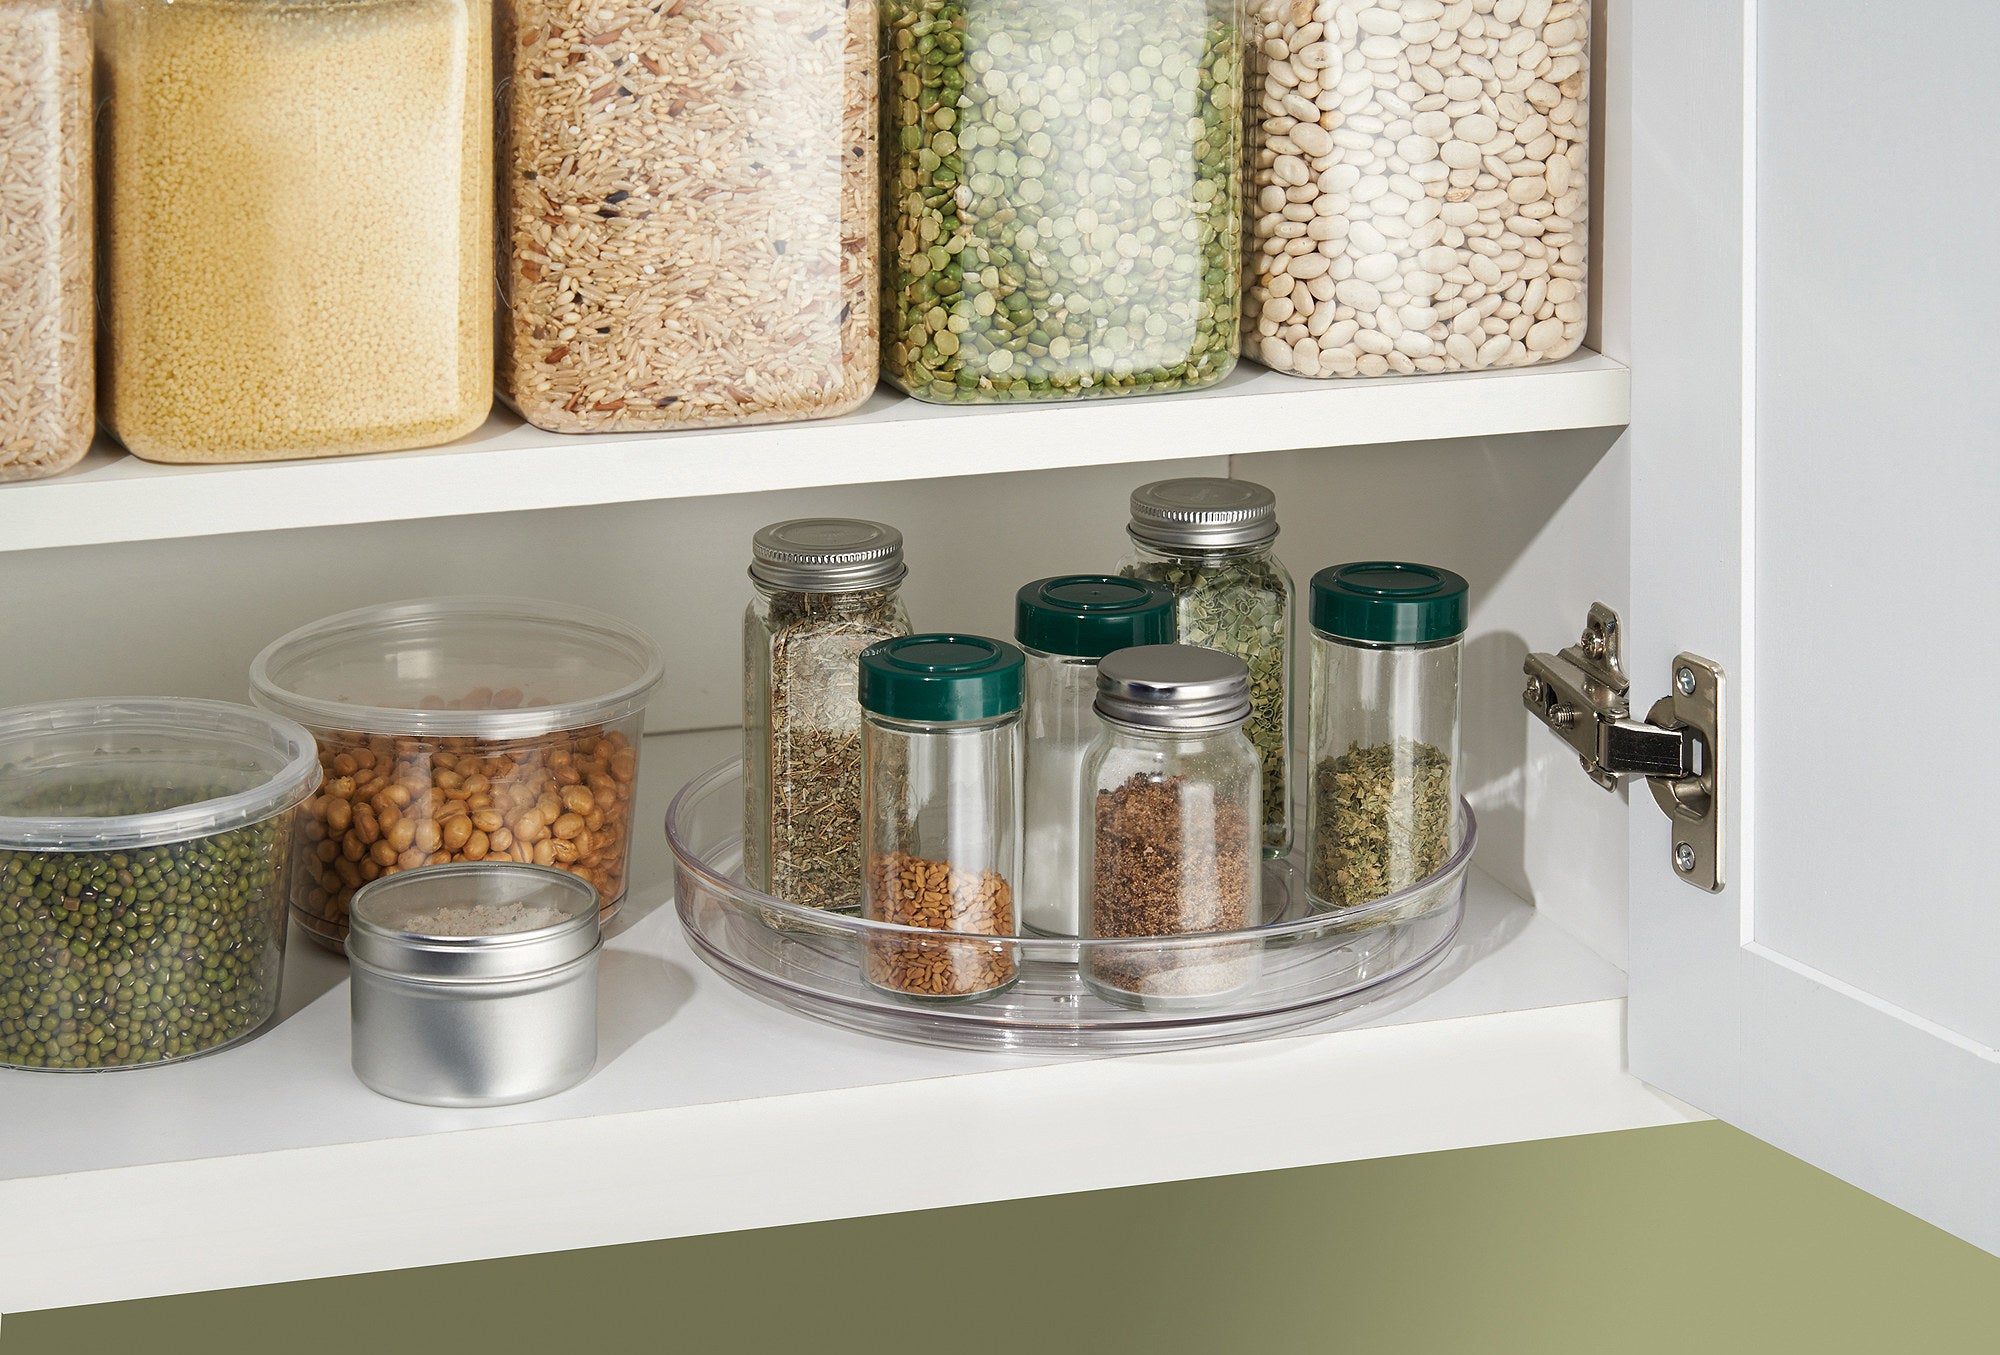 clear turnable holding spice jars on the bottom shelf of a cabinet